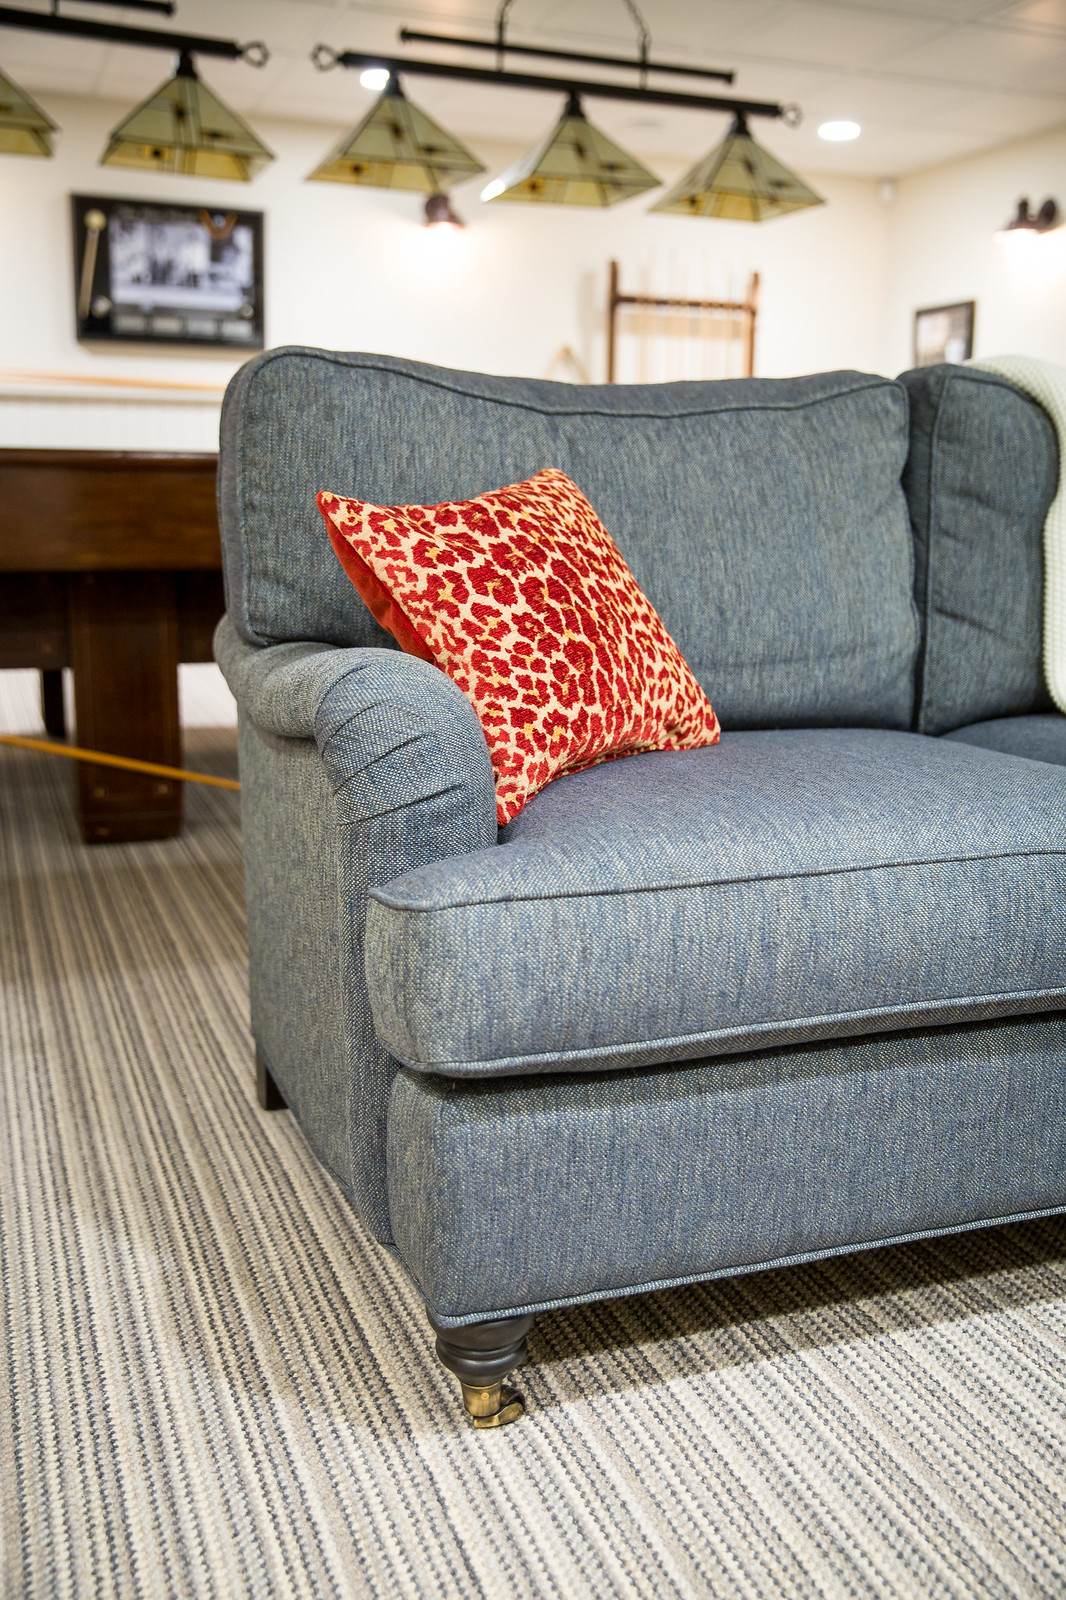 William Birch sofa from Gresham House upholstered in a denim blue tweed fabric with red animal print toss cushion